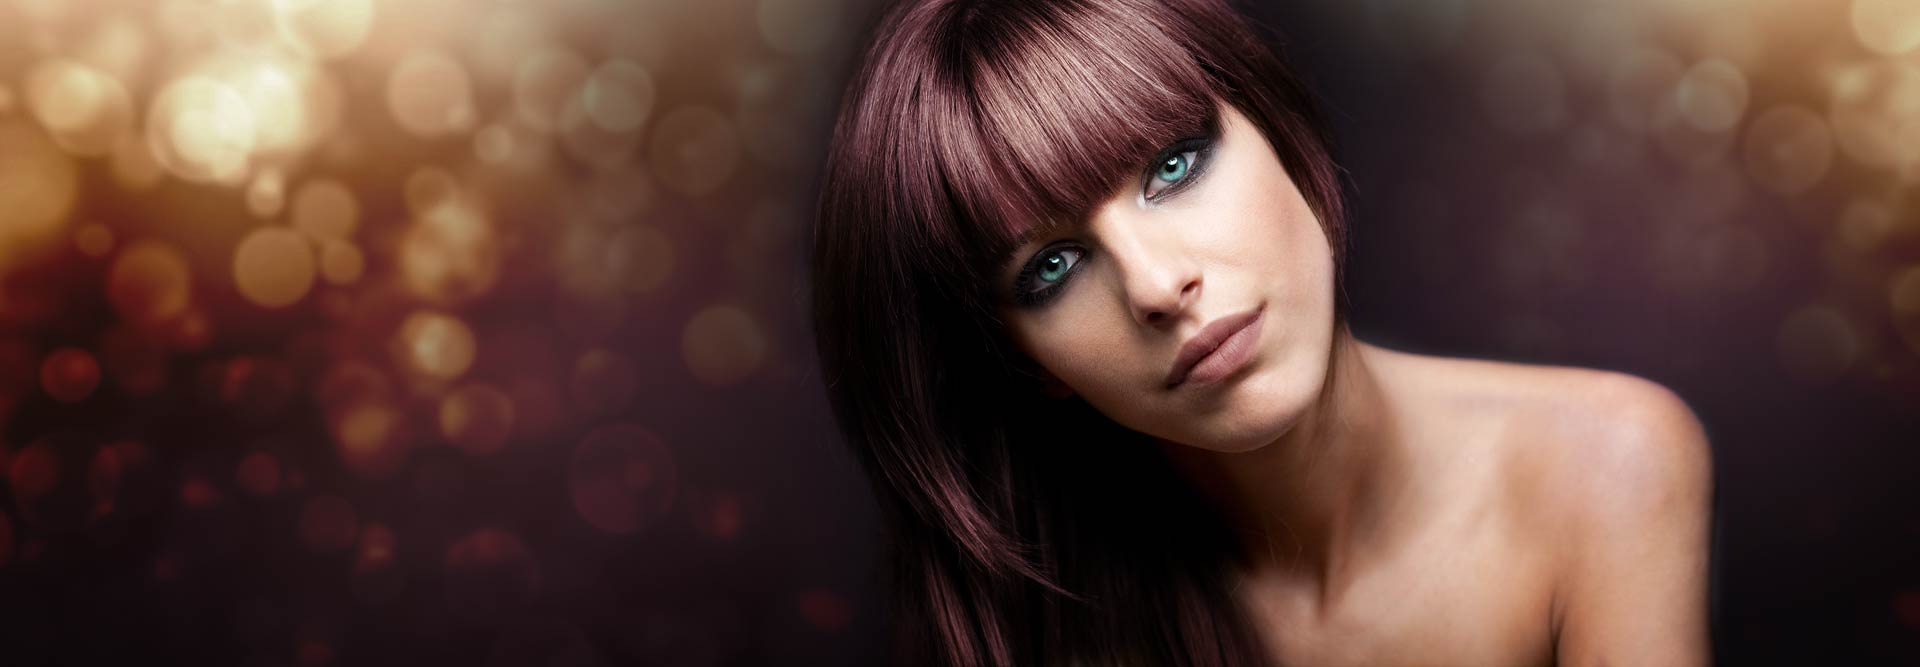 Meenas Salon And Spa Feel Good Inside And Out